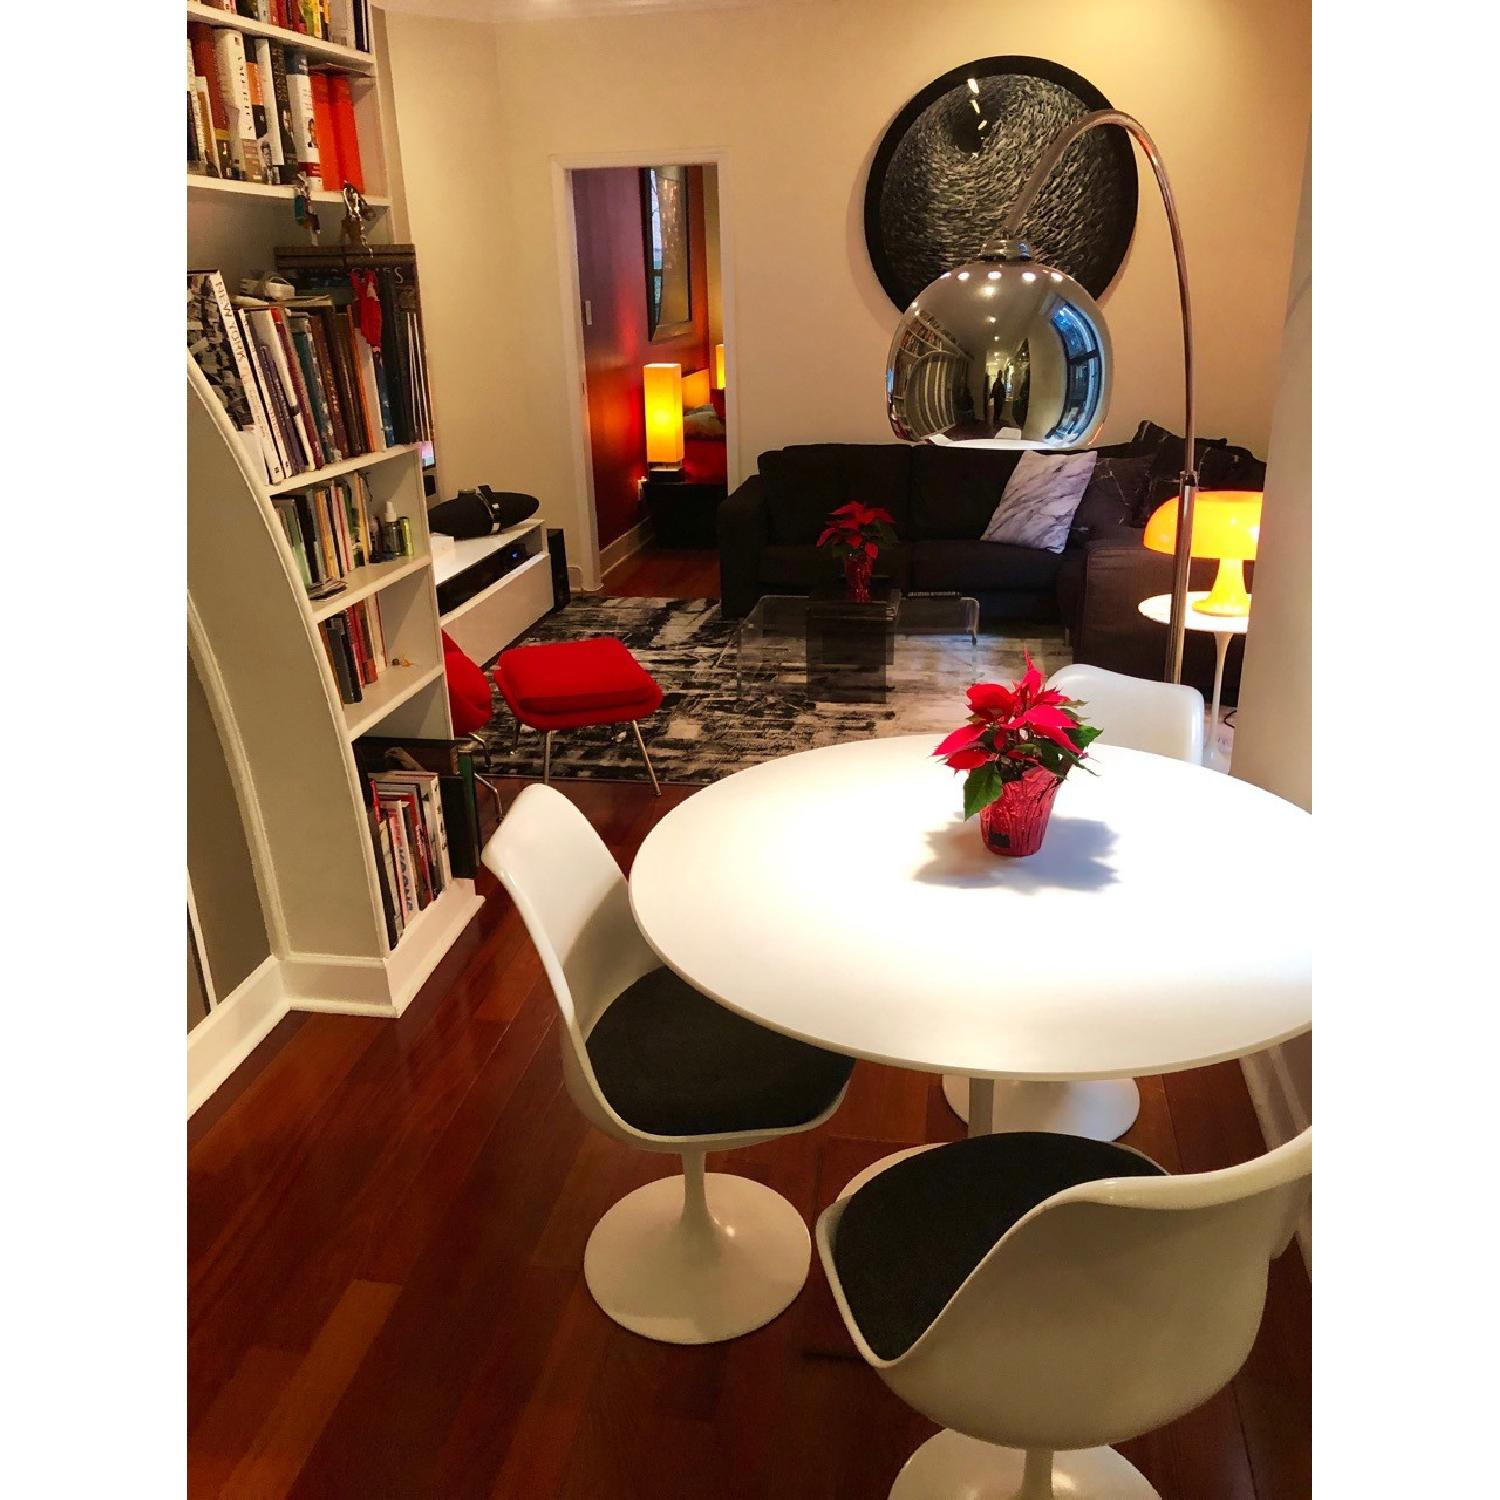 Eero Saarinen Dining Table w/ 4 Chairs-0